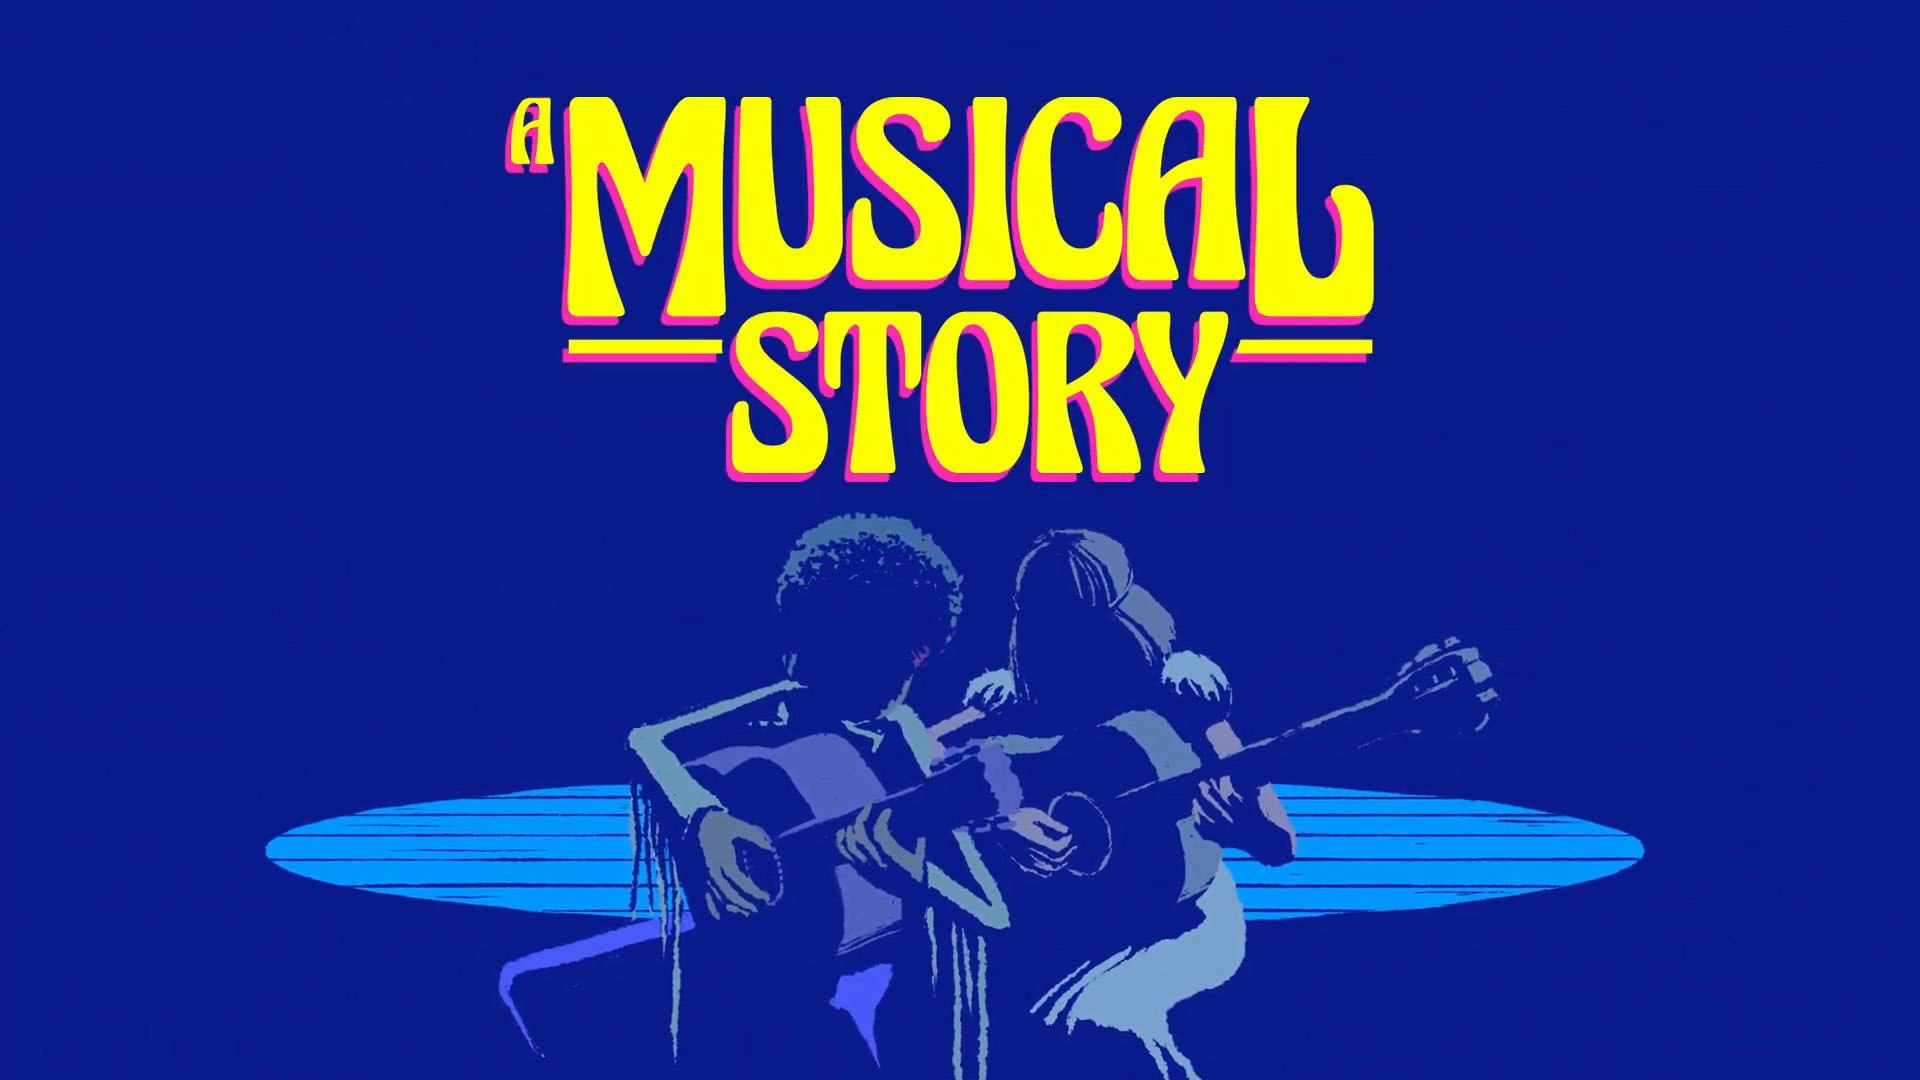 Free A Musical Story Wallpaper in 1920x1080